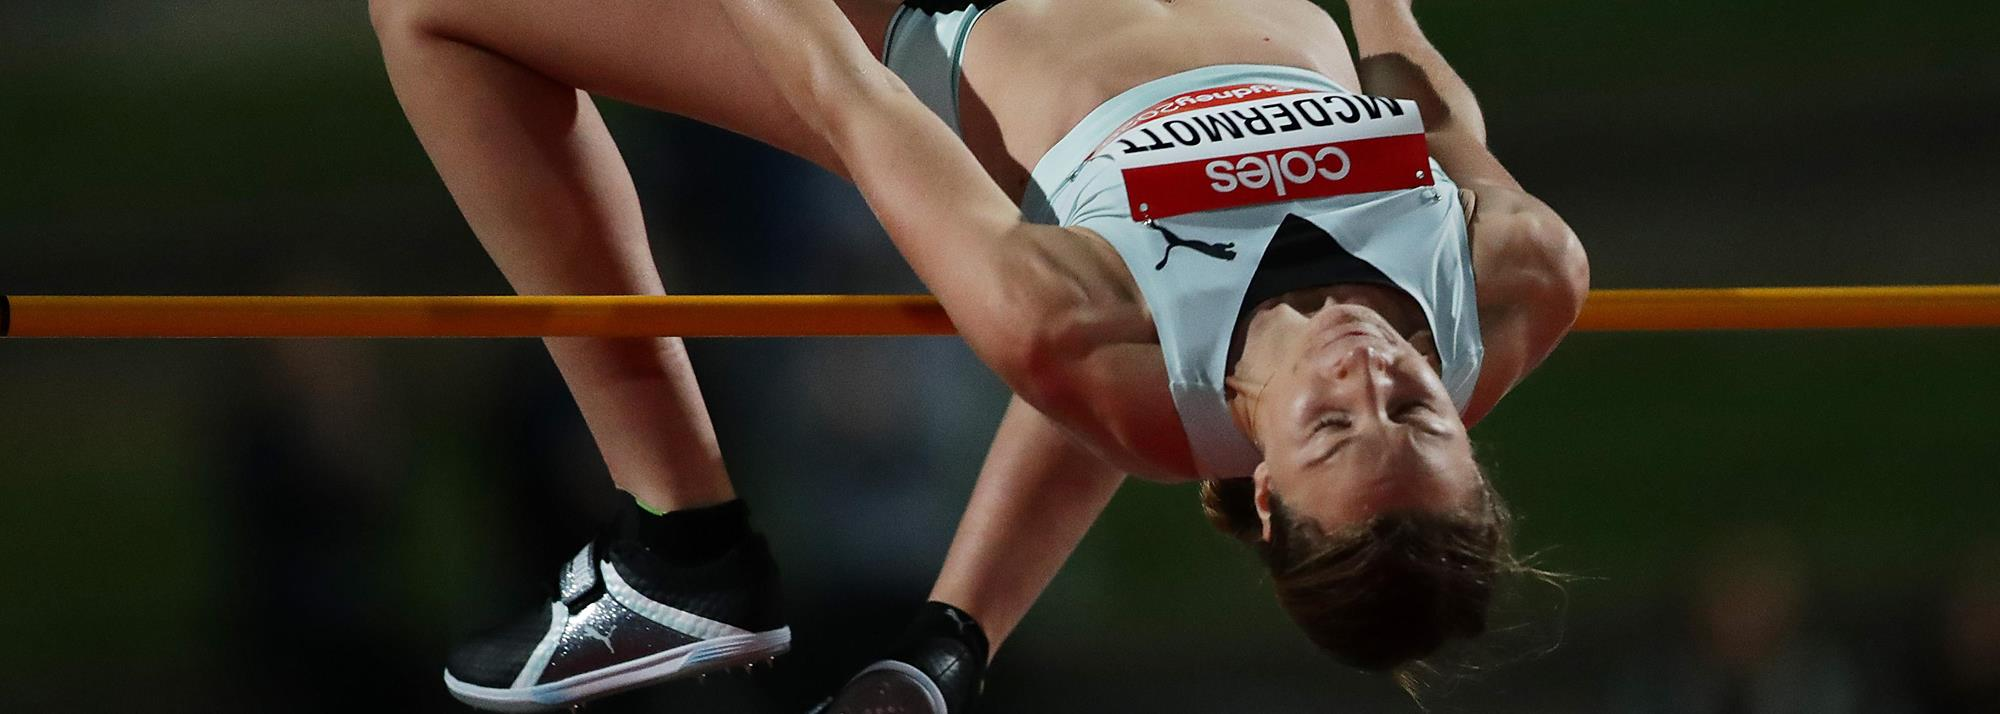 Rising star McDermott: 'High jump was my calling'